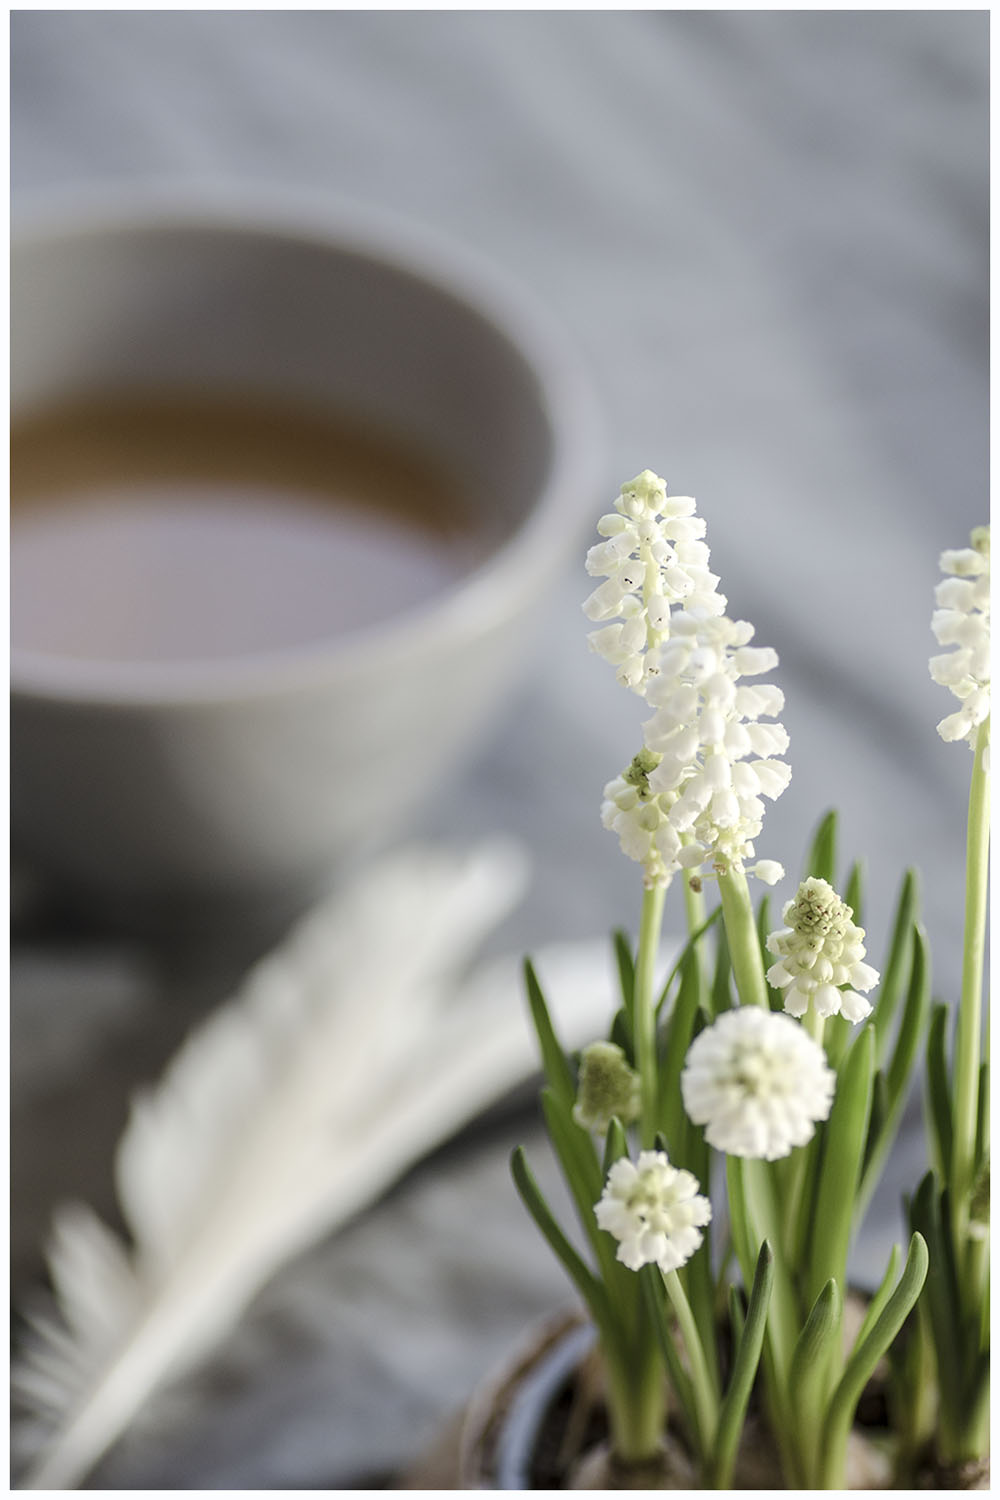 Spring flowers & coffee